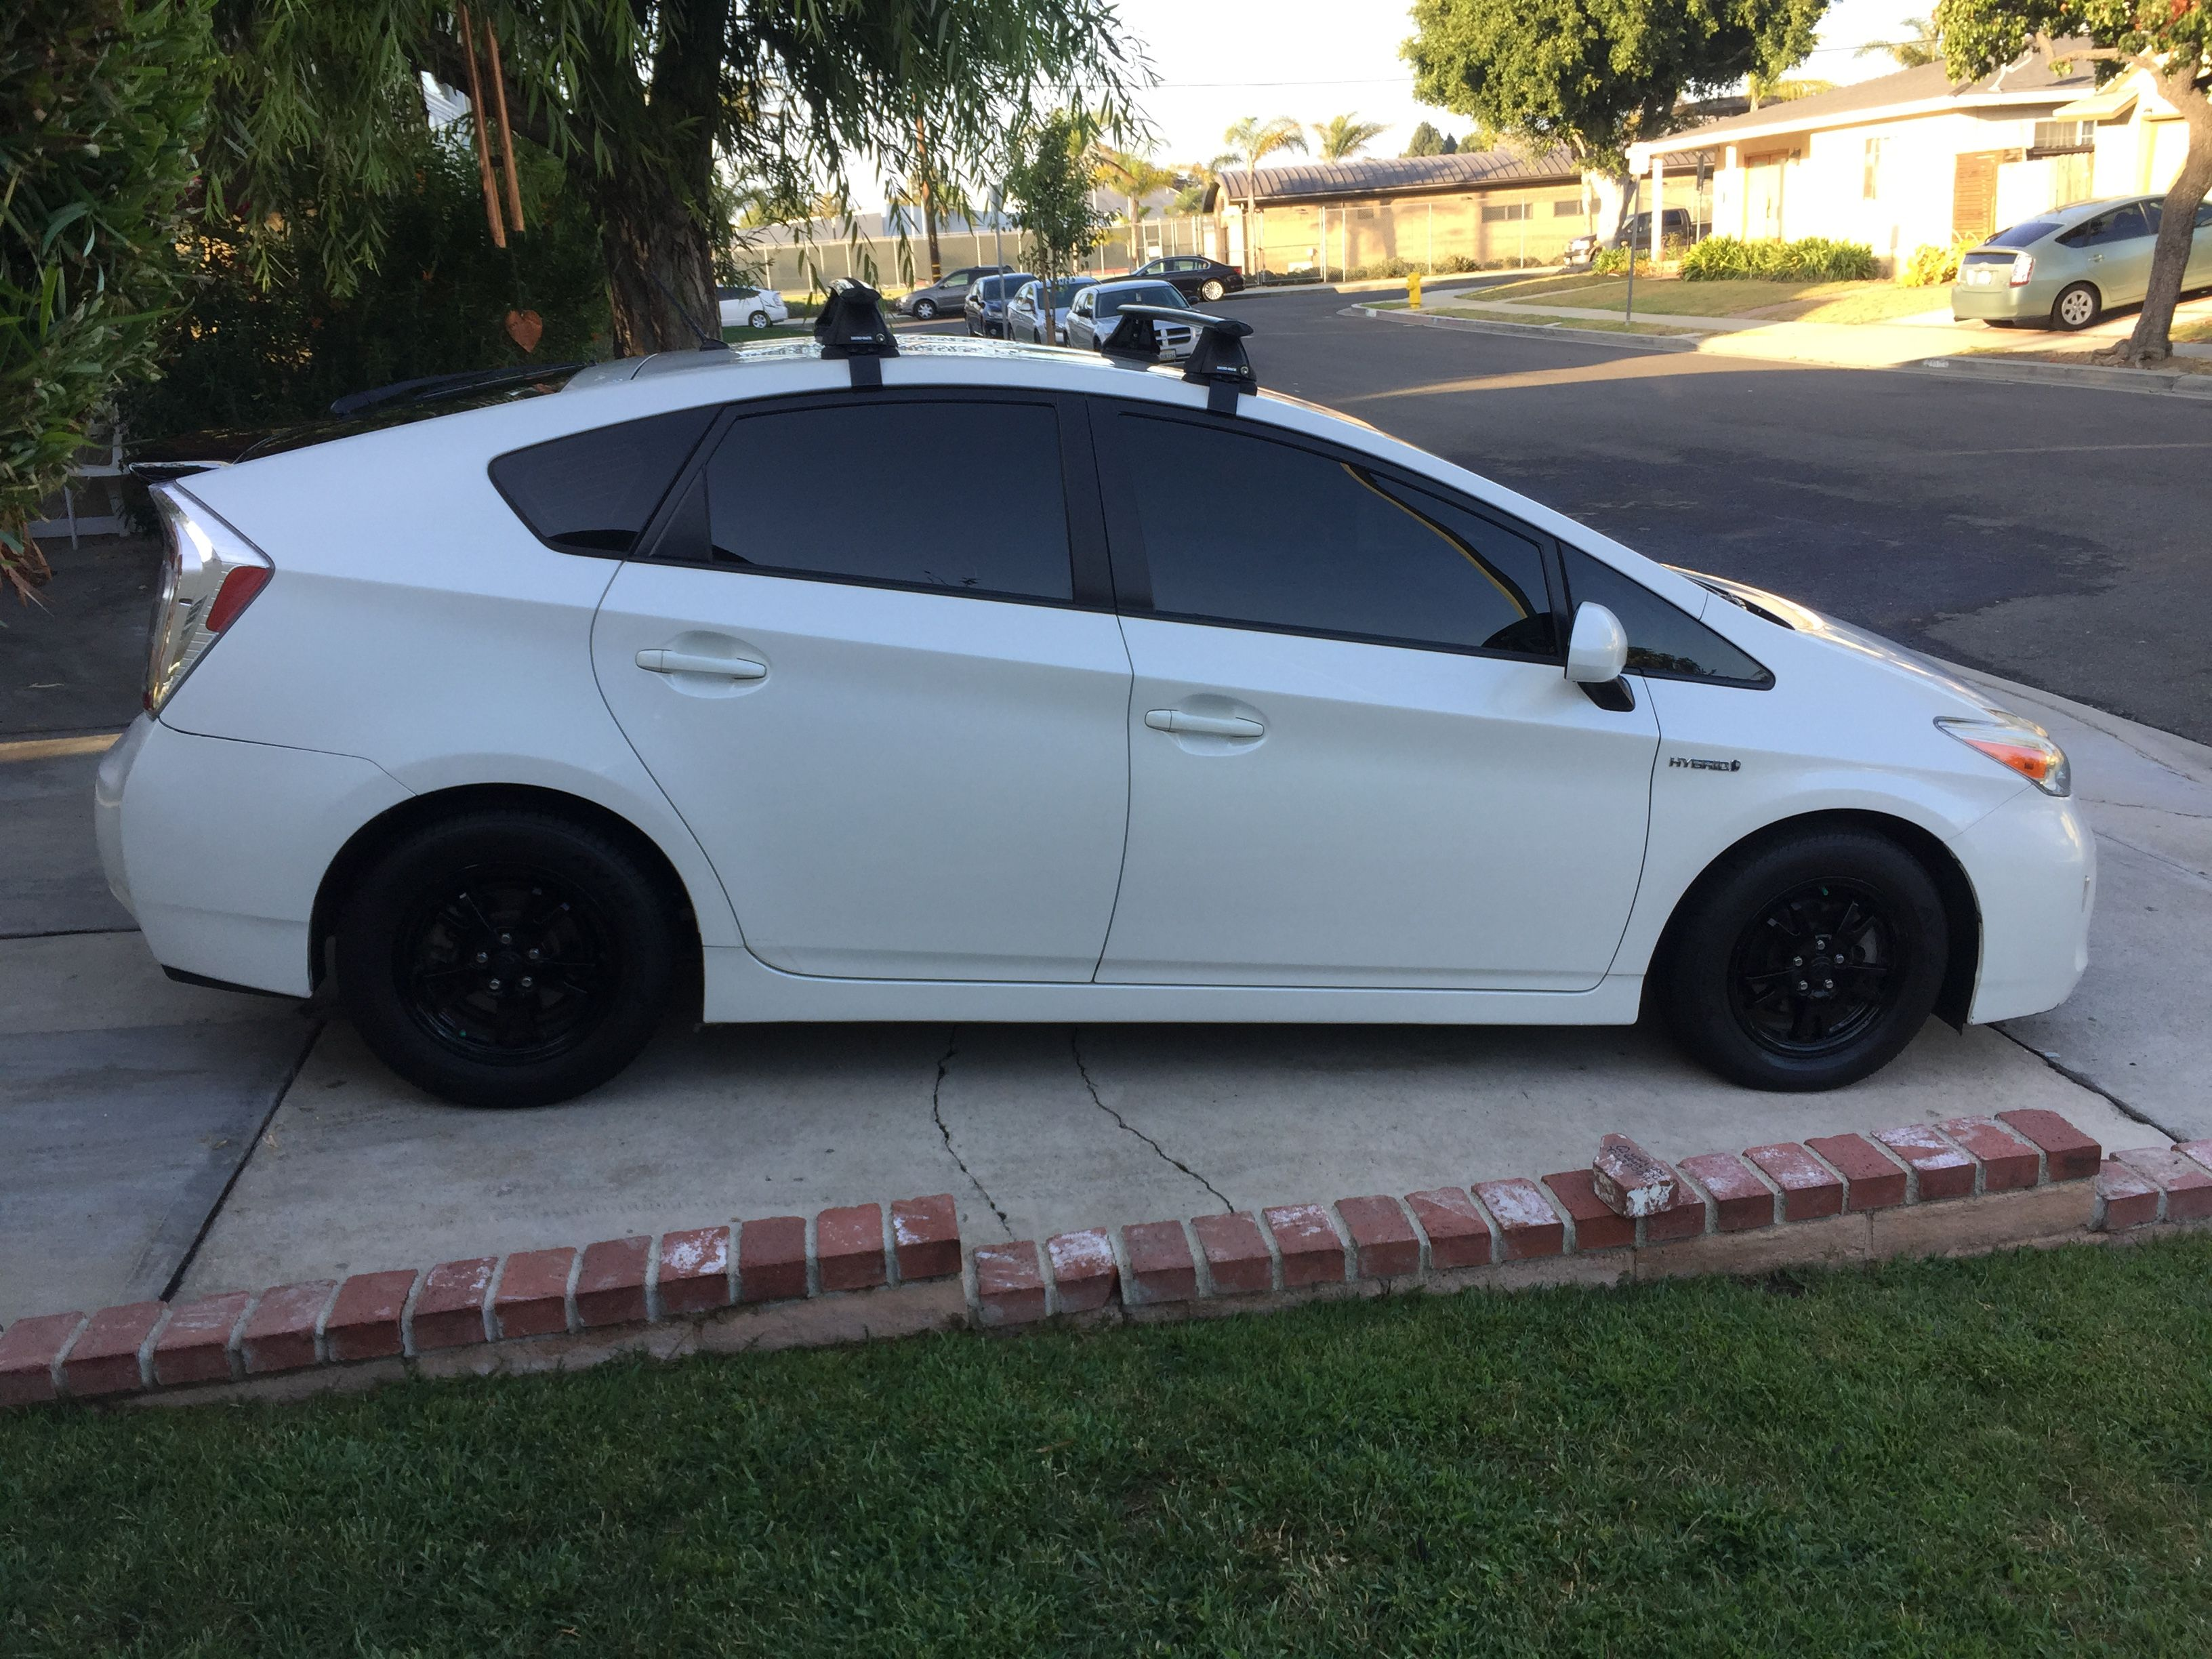 Prius Roof Rack >> 2013 Prius With A Rhino Rack Vortex 2500 Aero Roof Rack System